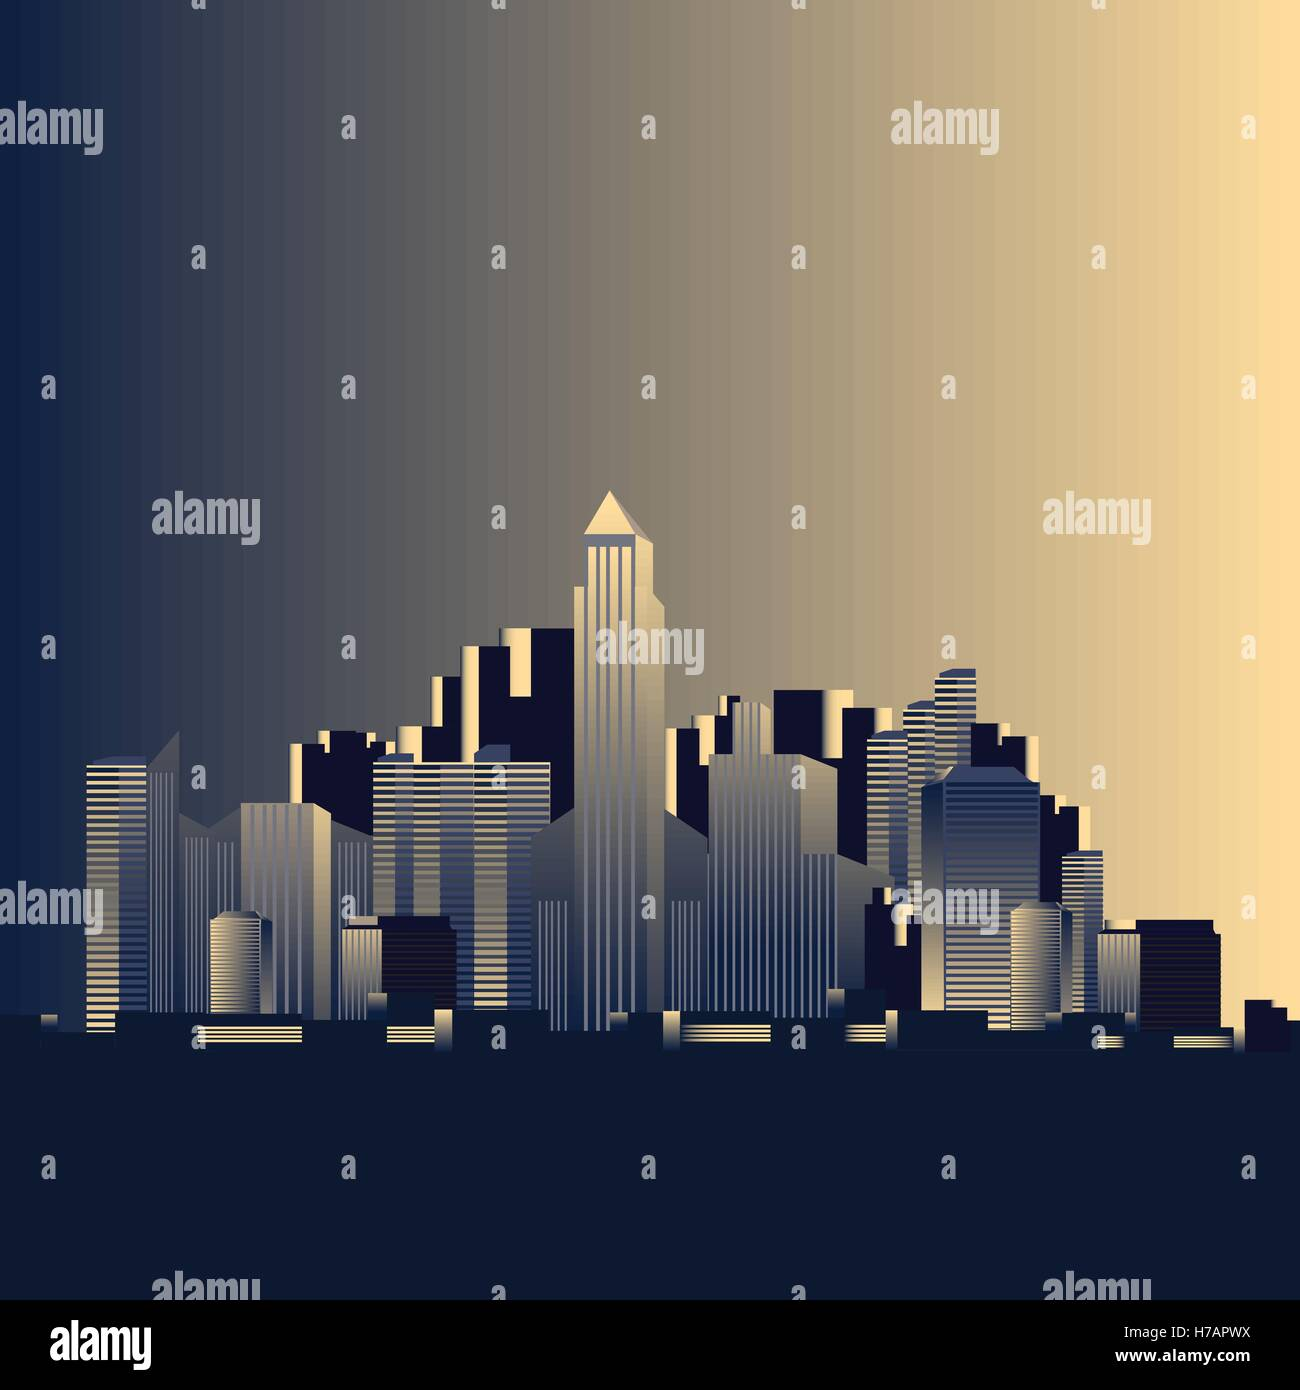 Outline athens skyline with blue buildings and copy space stock vector - Simple City Skyline Vector Illustration Stock Vector